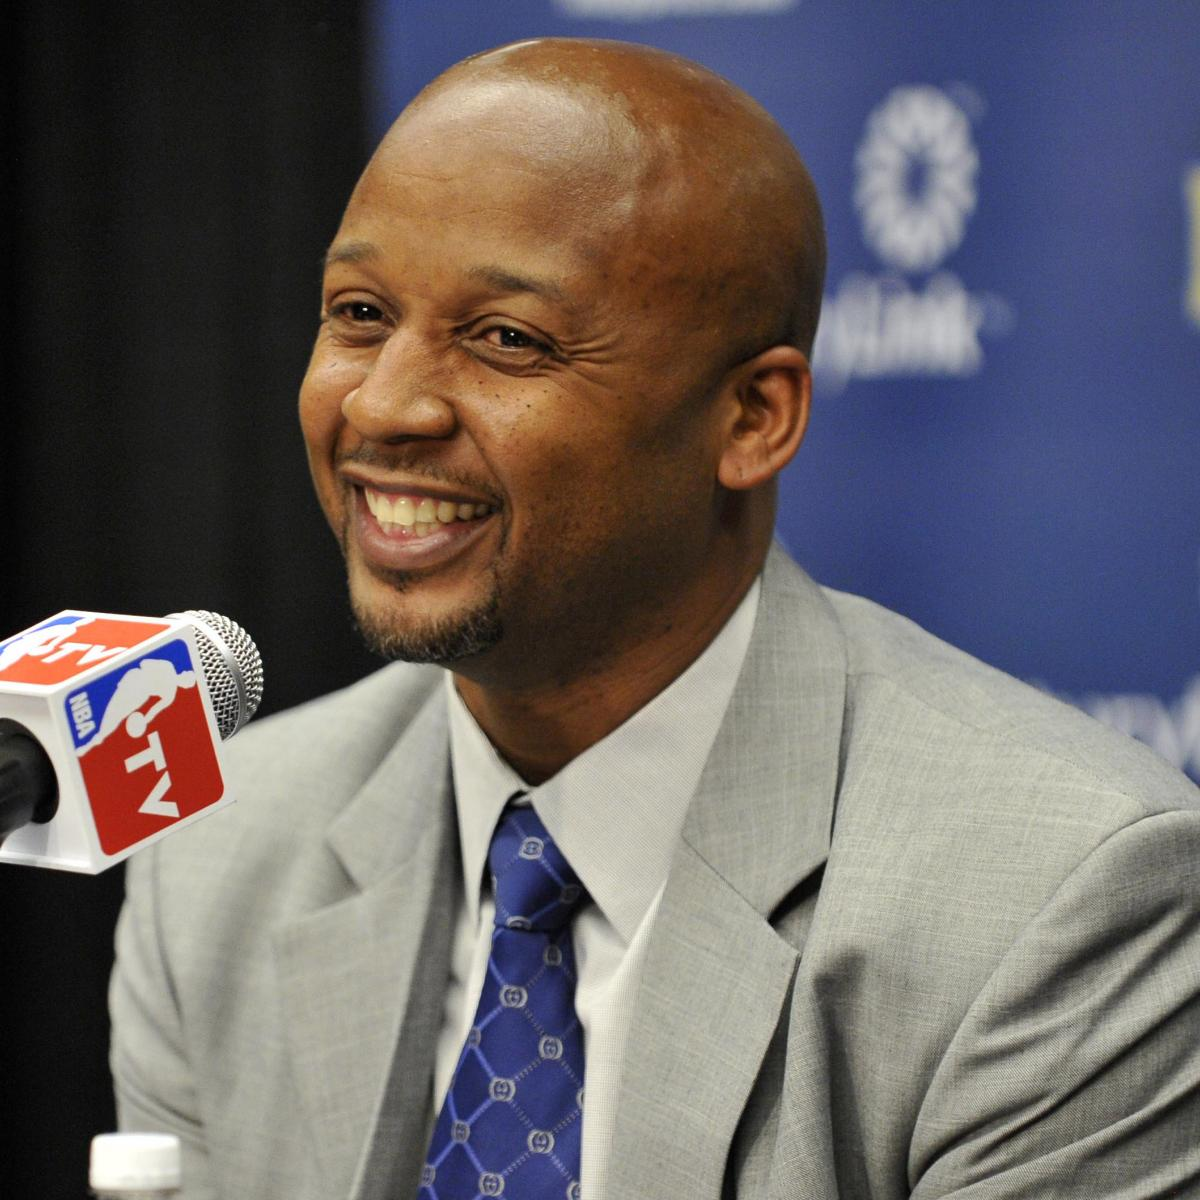 Denver Nuggets Home Record: How New Coach Brian Shaw Can Take Denver Nuggets To The